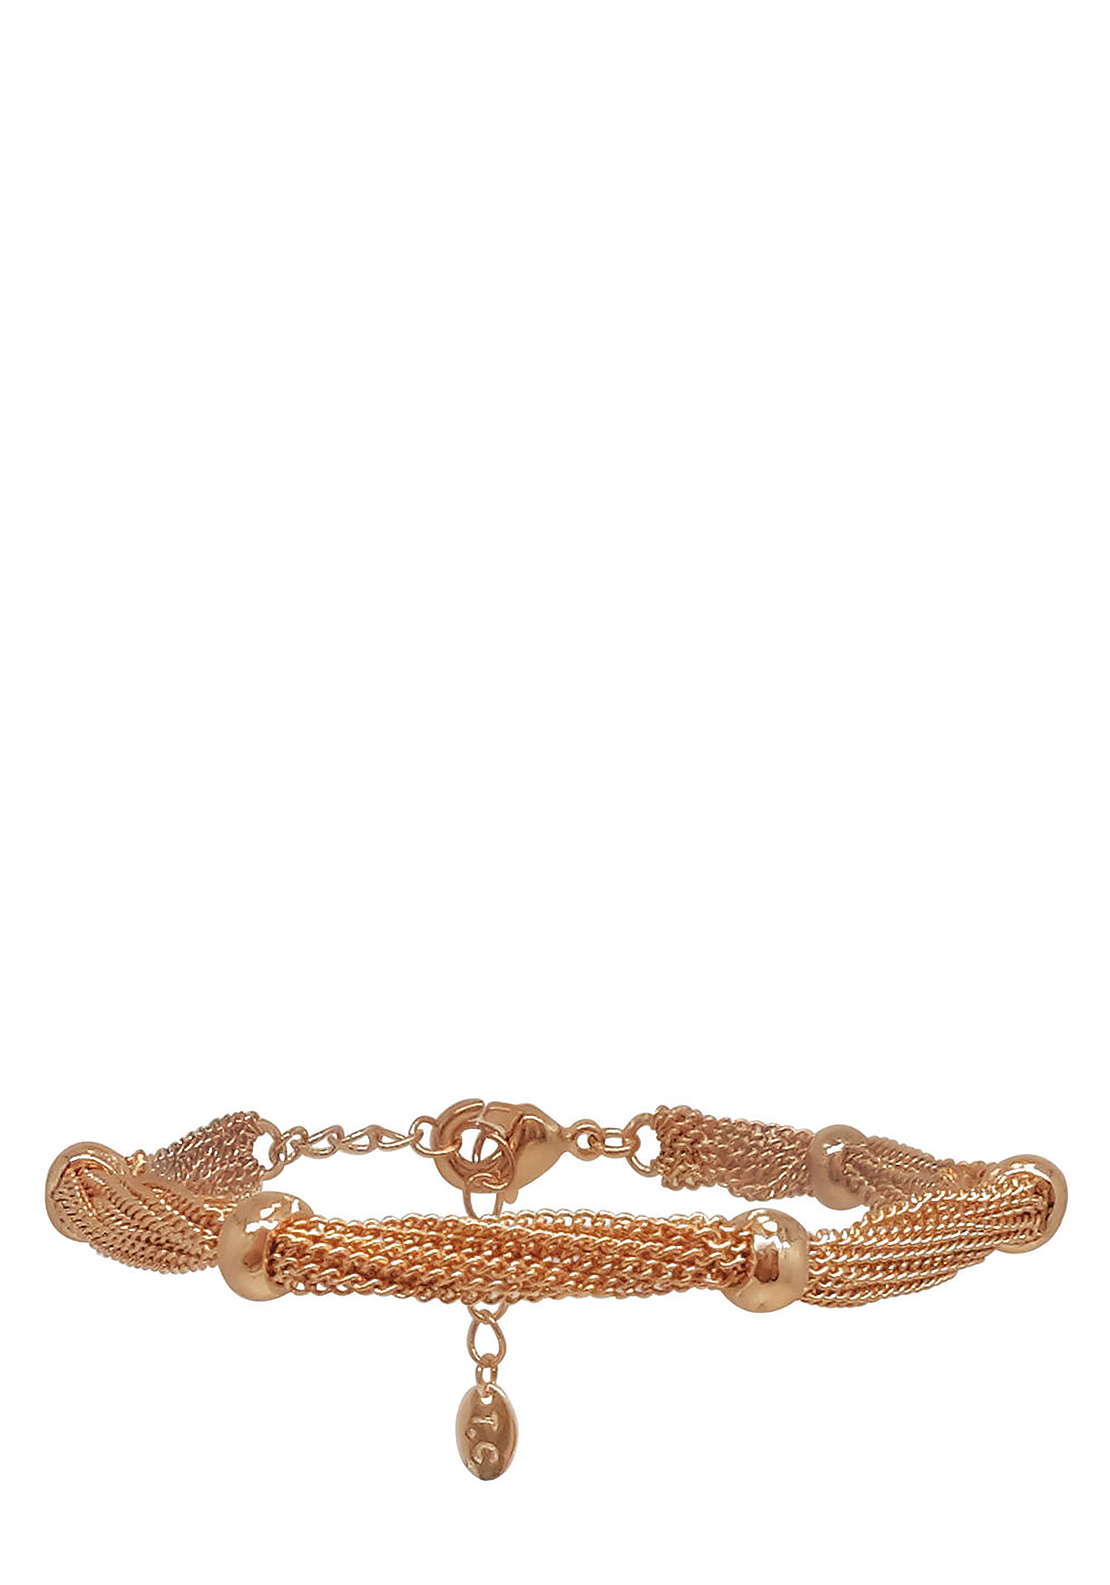 Tipperary Crystal Multi Chain Bracelet, Rose Gold